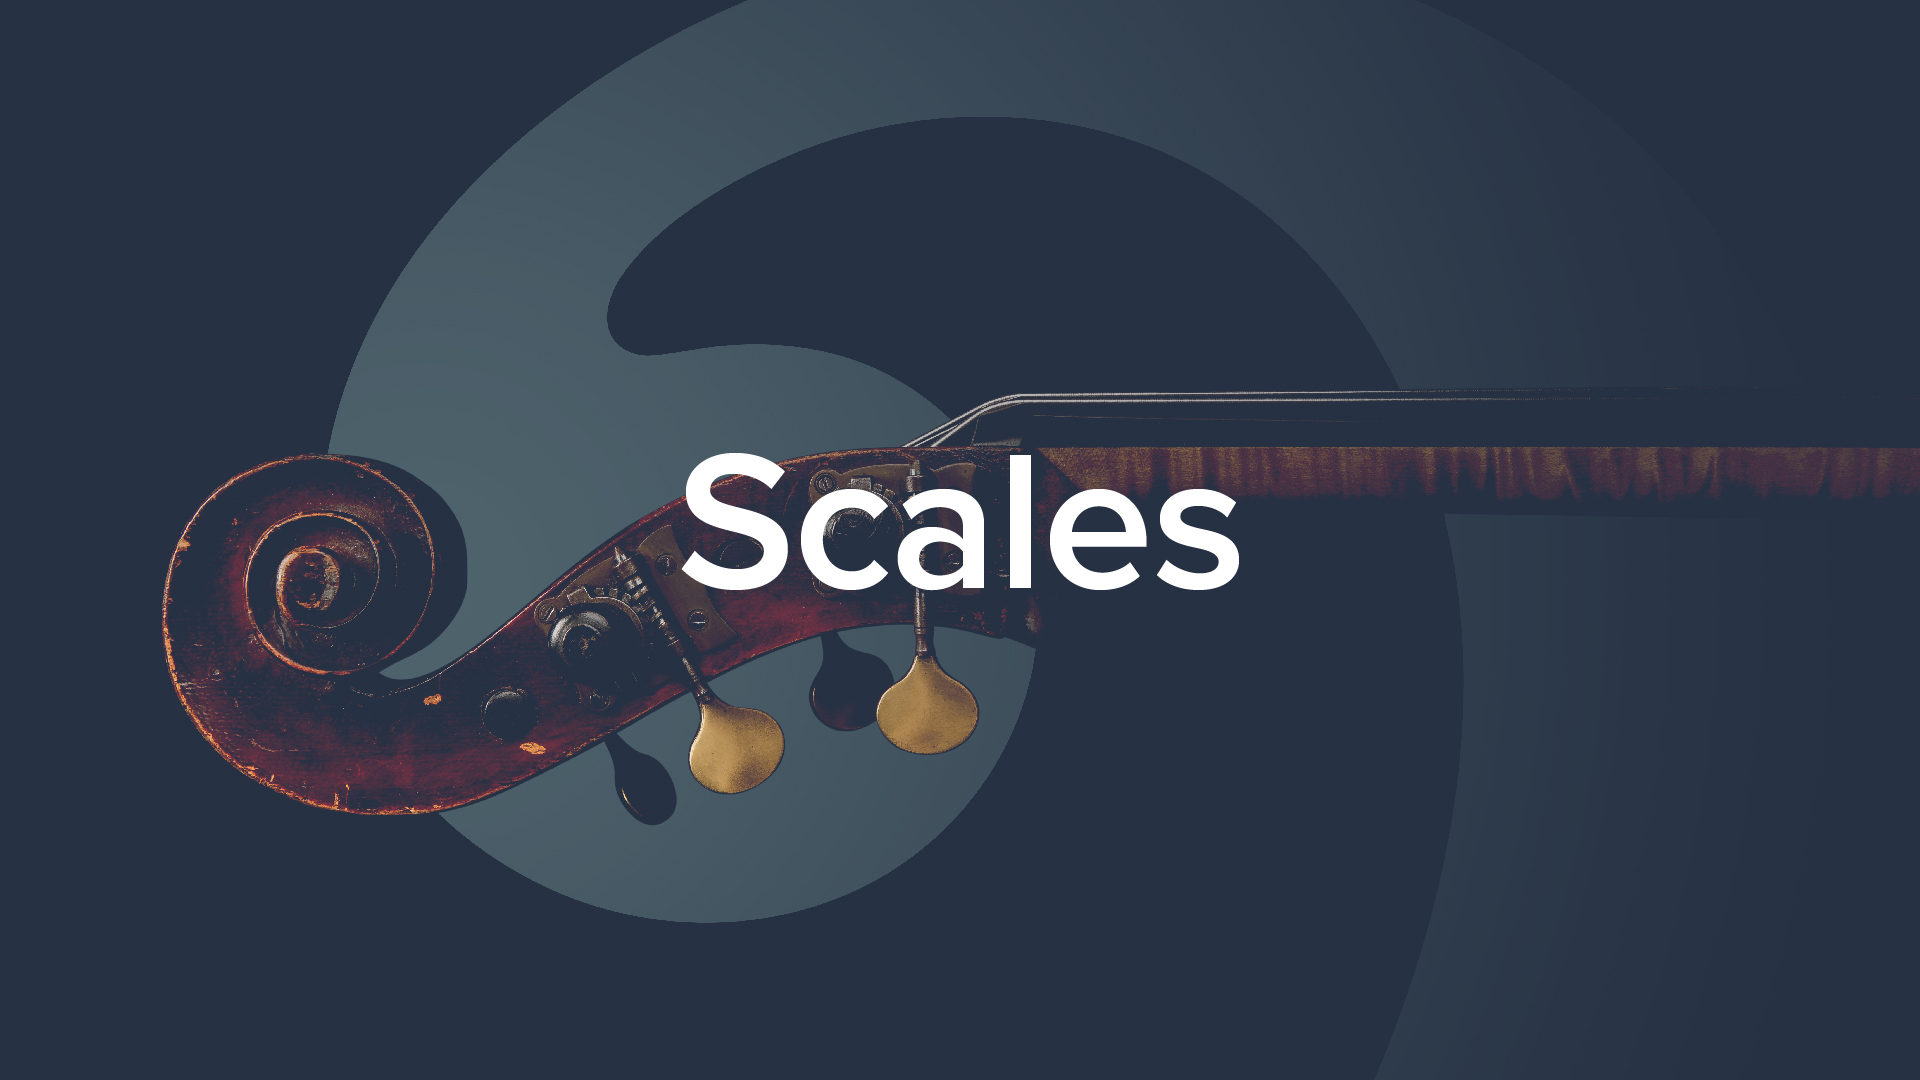 'Double Bass Scales' by Geoff Chalmers